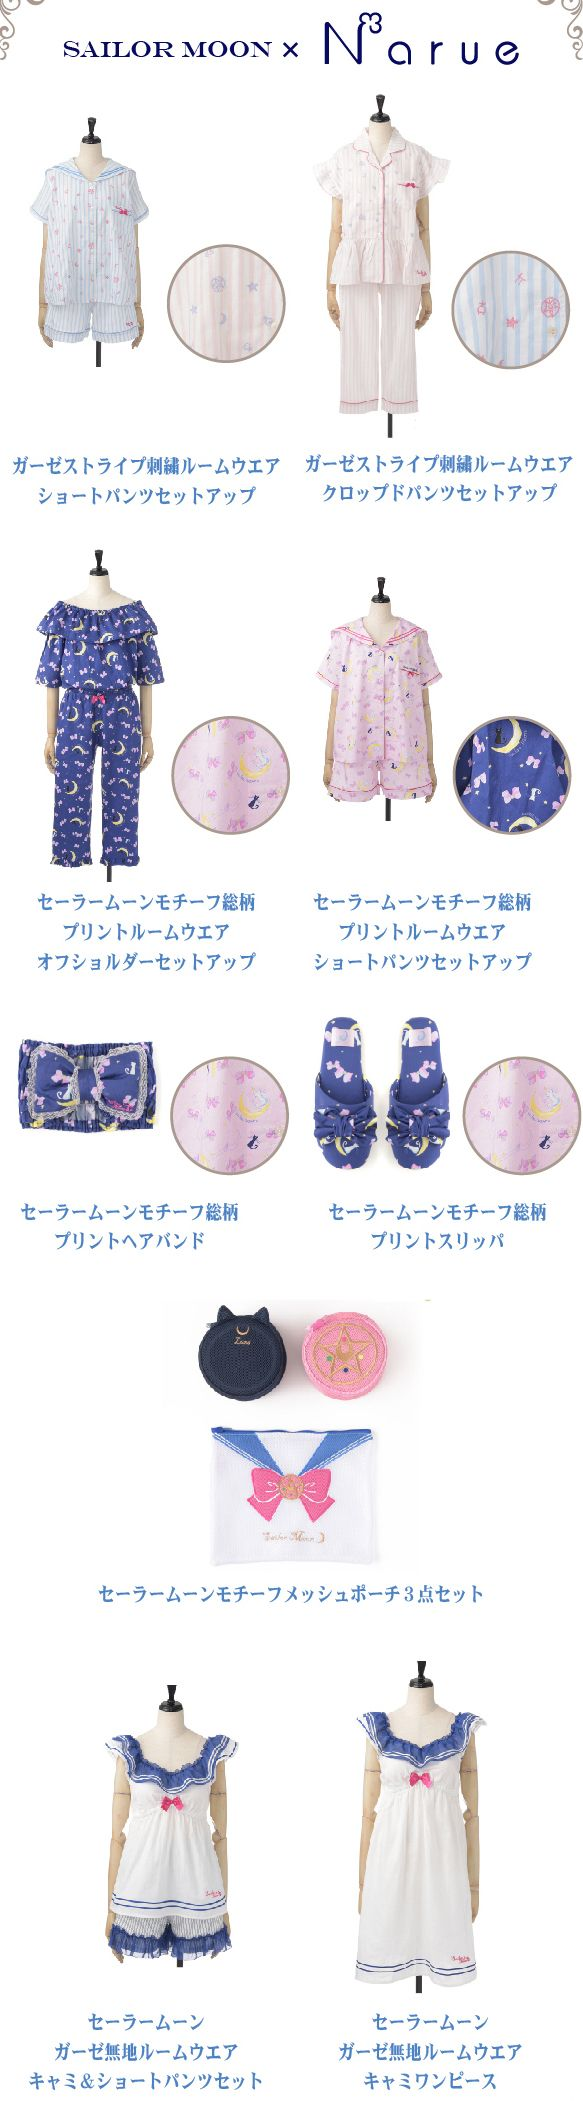 """sailor moon"" ""sailor moon merchandise"" ""sailor moon apparel"" ""sailor moon clothes"" pajamas ""room wear"" narue isetan collaboration anime japan shop 2016"